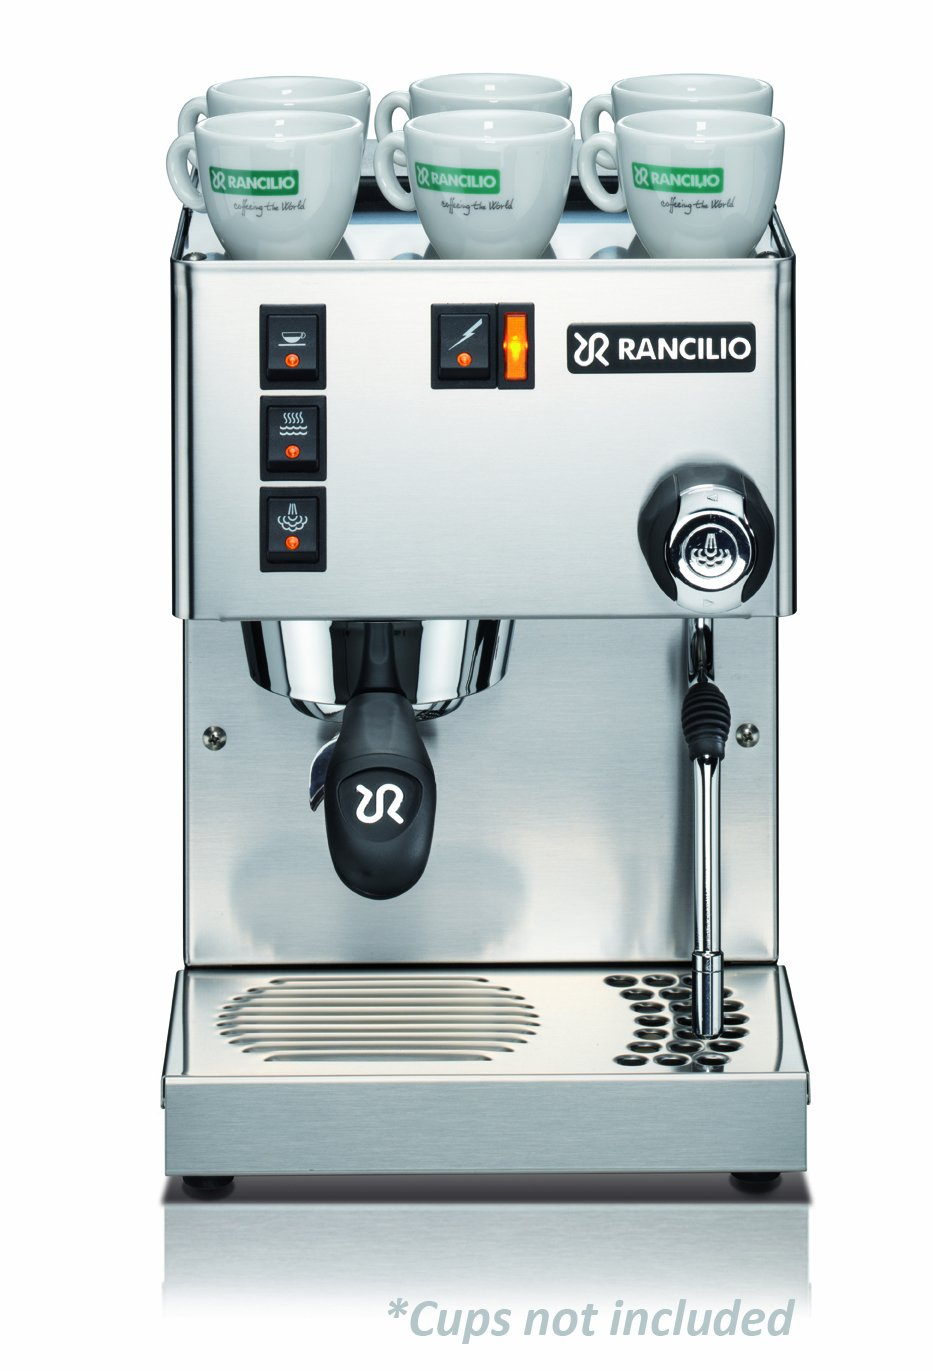 Electronic Rancilio Coffee Machine For Sale amazon com rancilio silvia espresso machine with iron frame and stainless steel side panels 11 4 by 13 inch kitchen dini